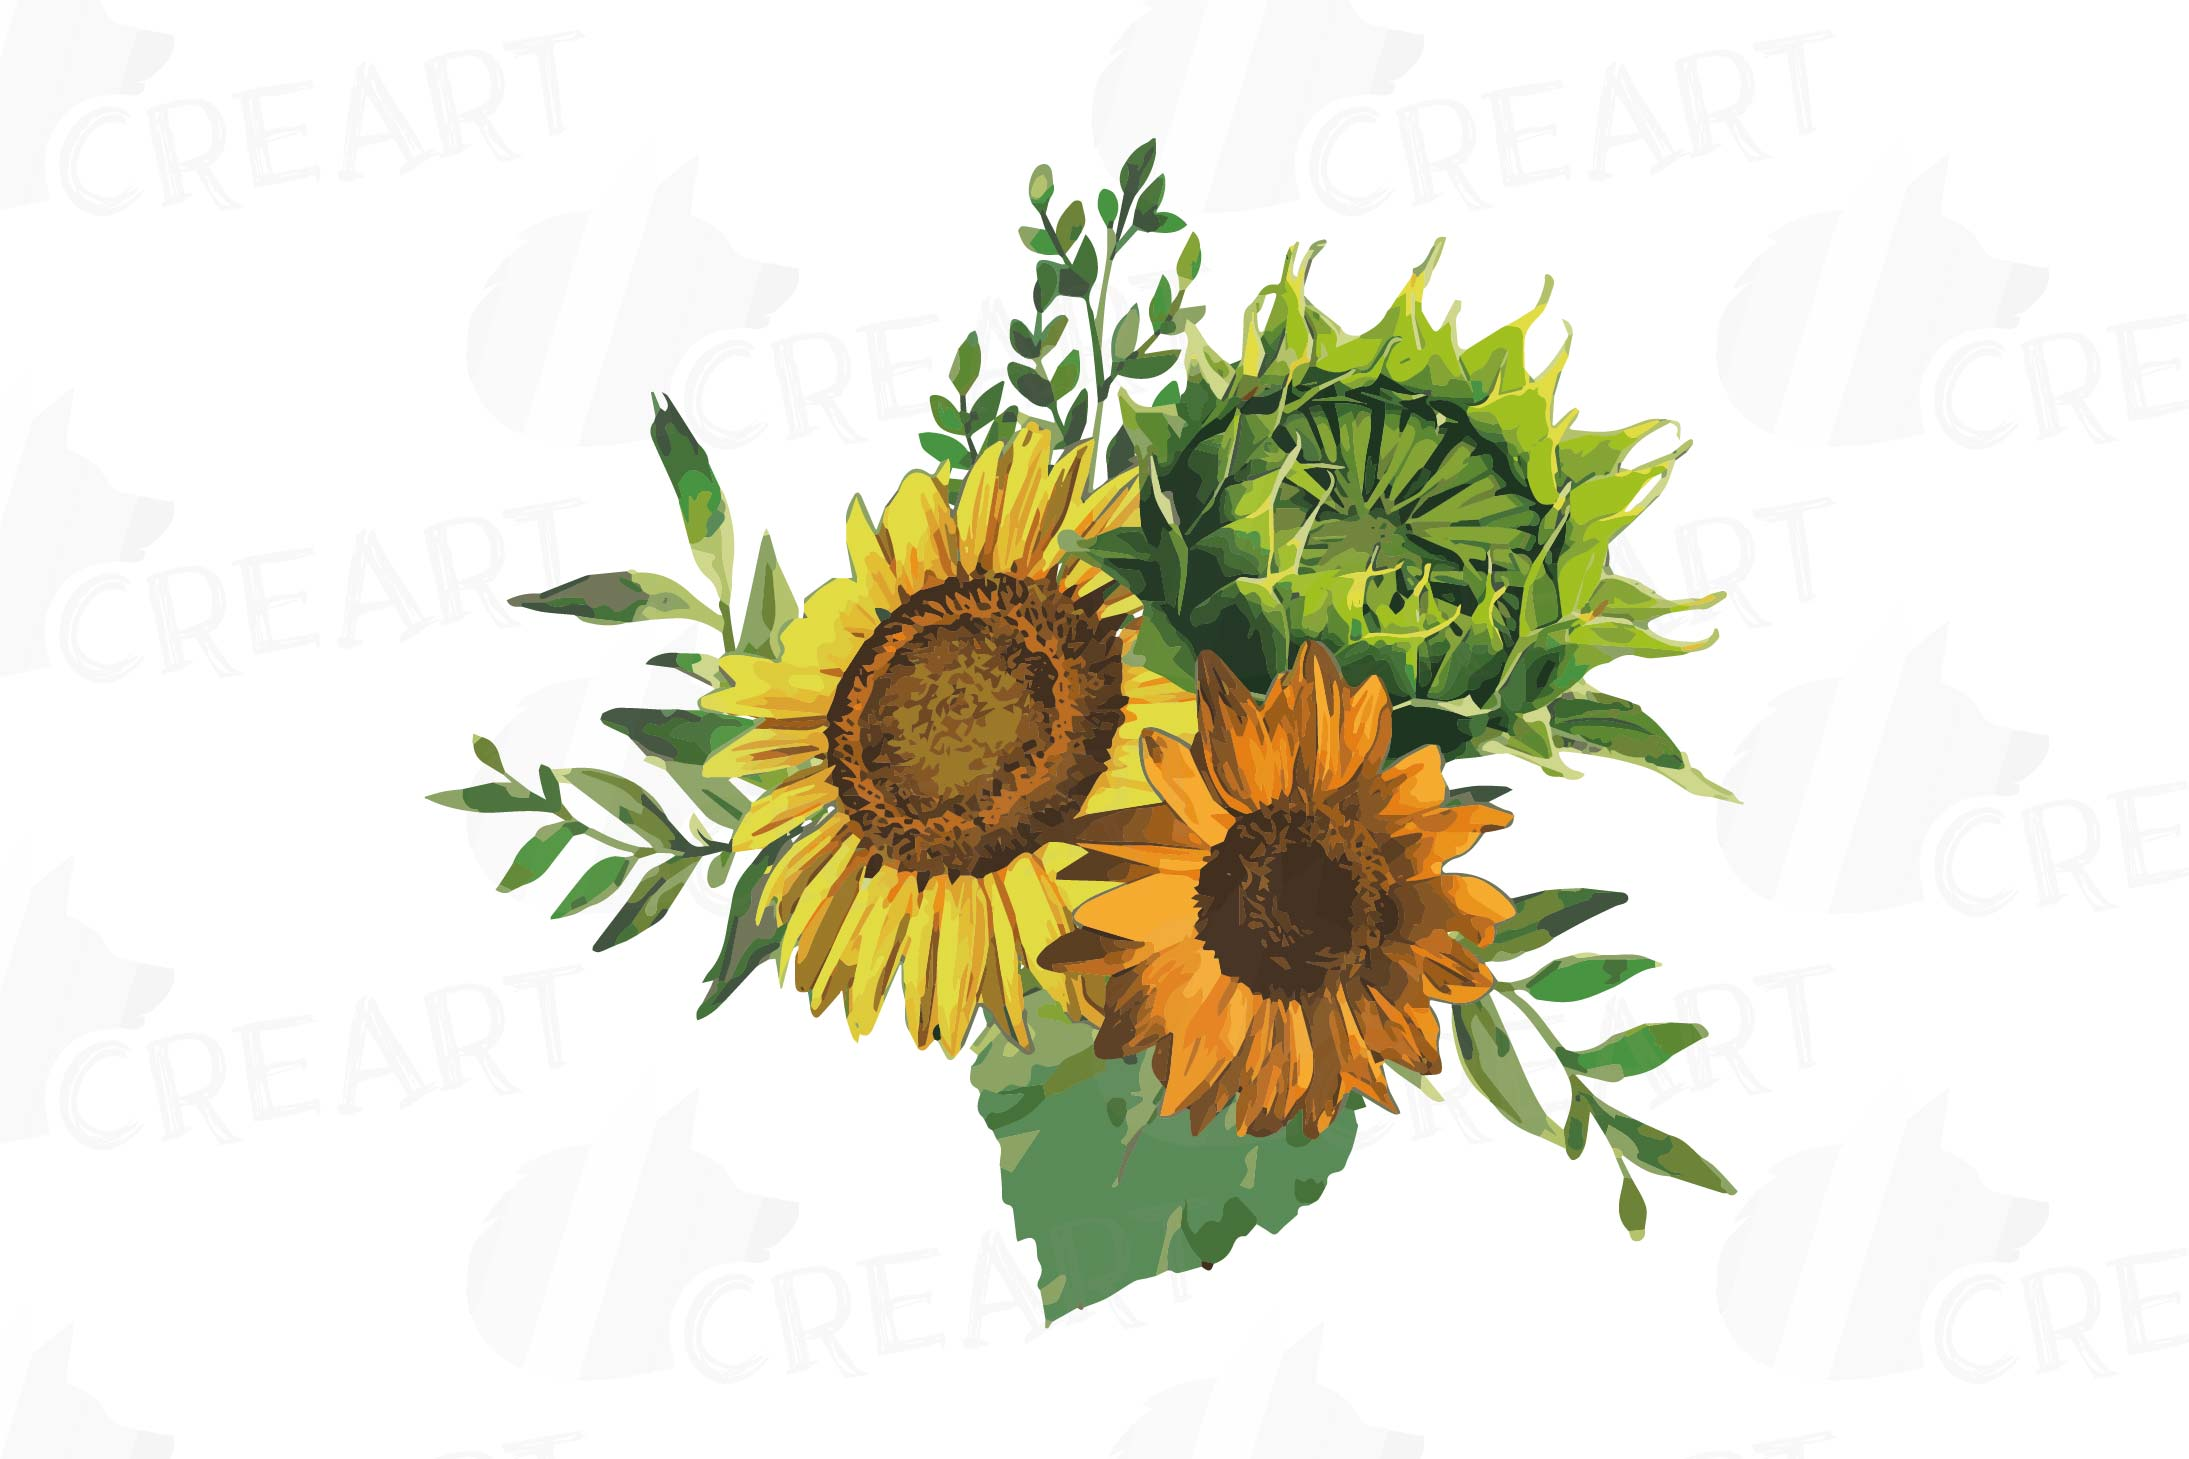 Watercolor sunflower bouquets and design elements example image 5